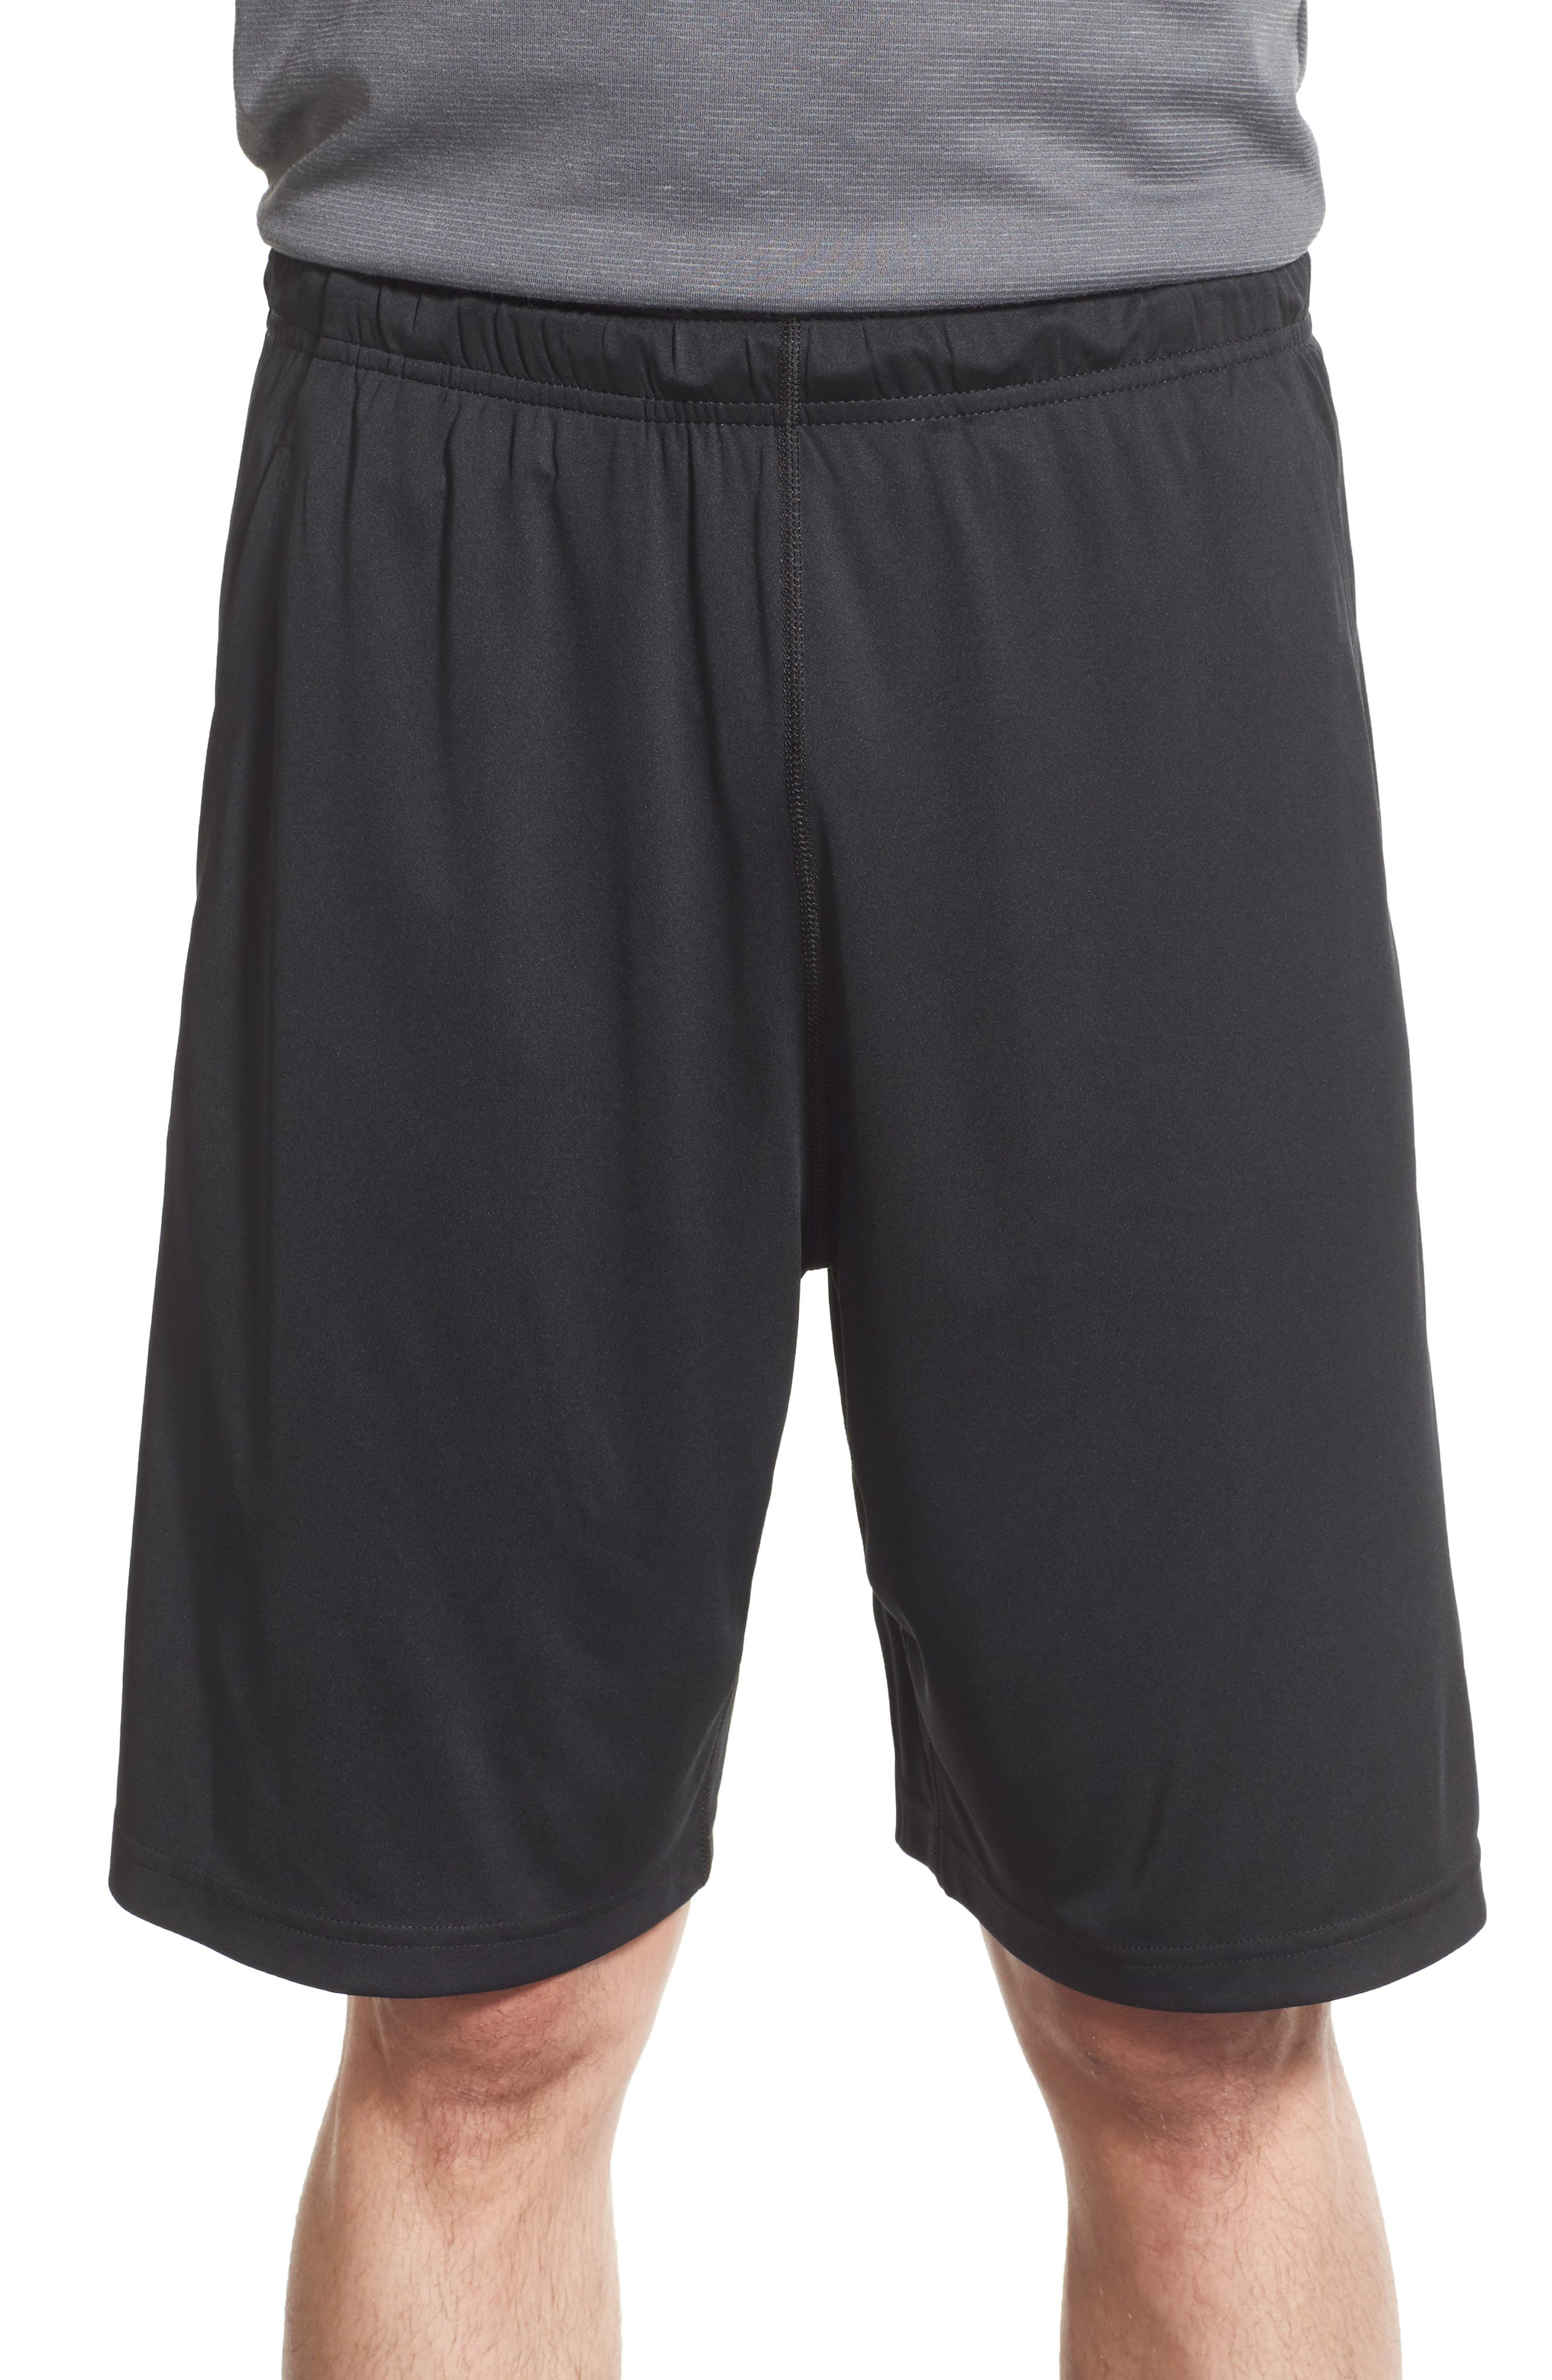 Fly Athletic Shorts,                         Main,                         color, Black/ D Grey